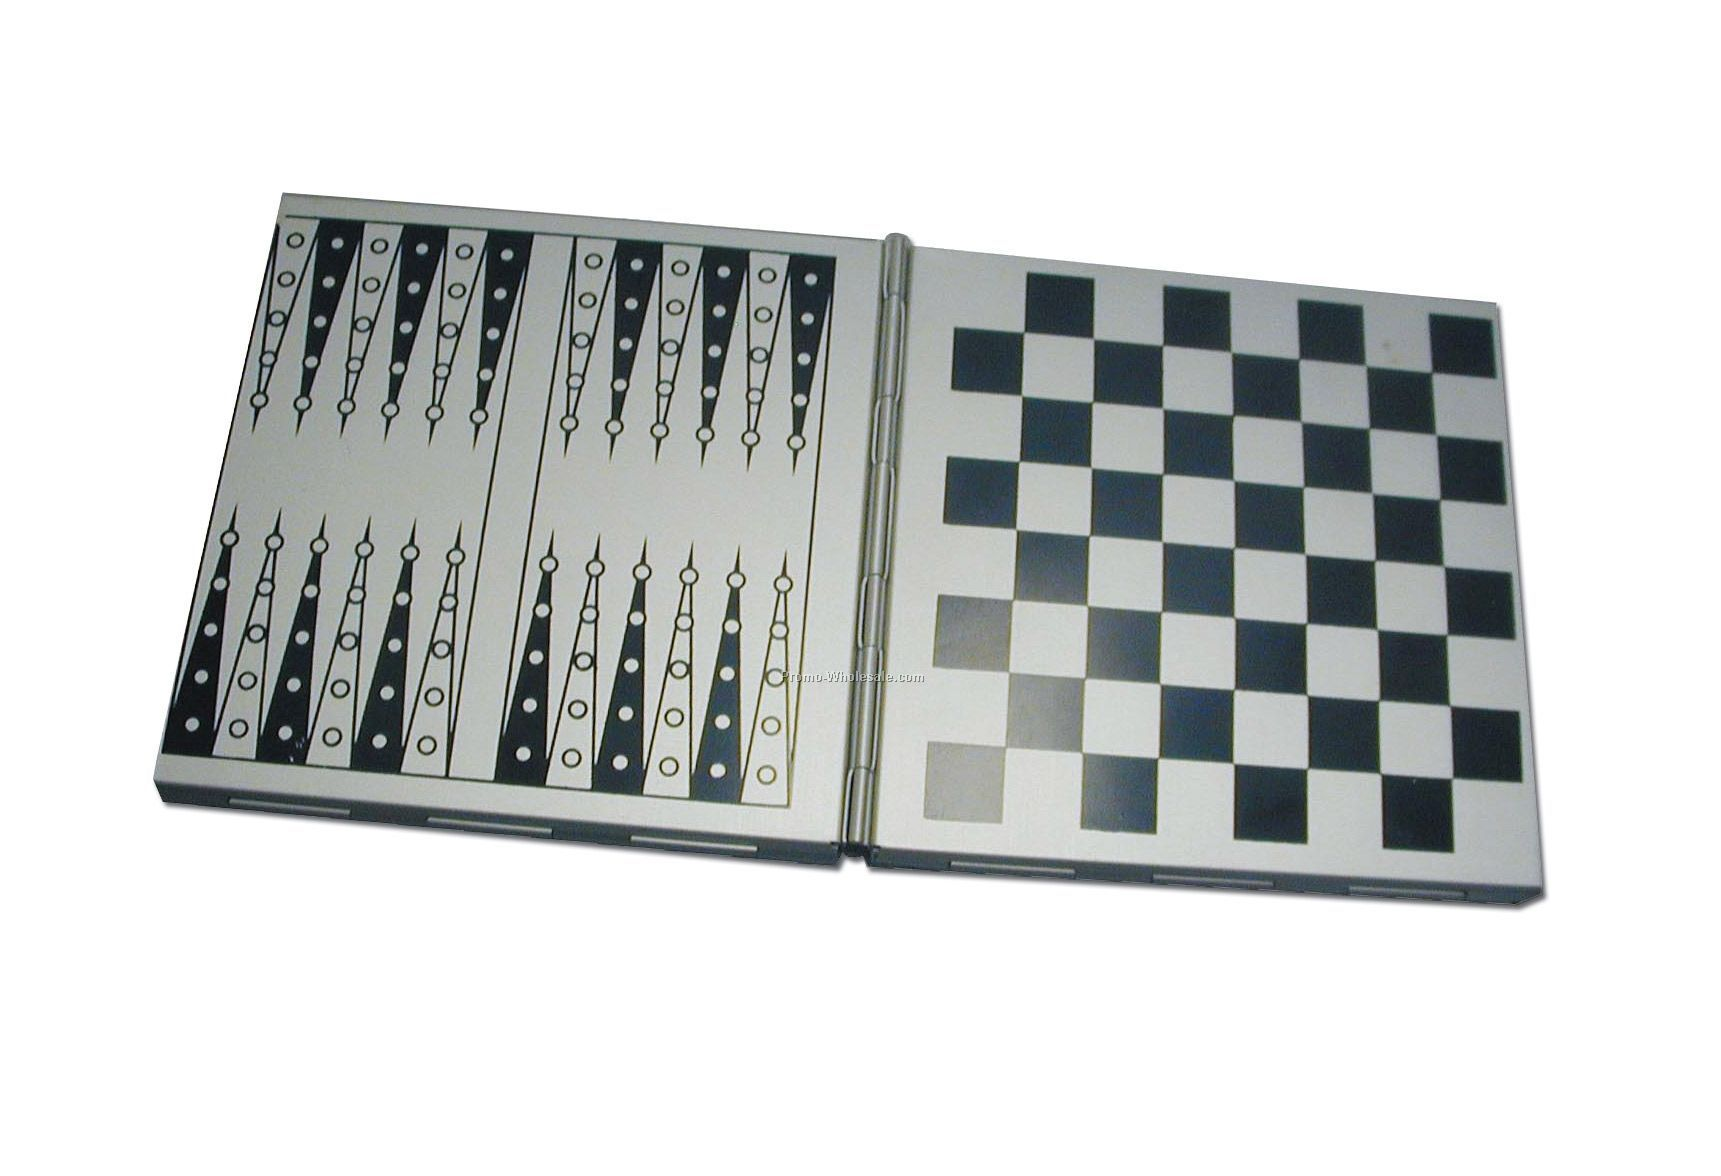 Magnetic 3-in-1 Metal Case Chess/Checkers/Backgammon Set